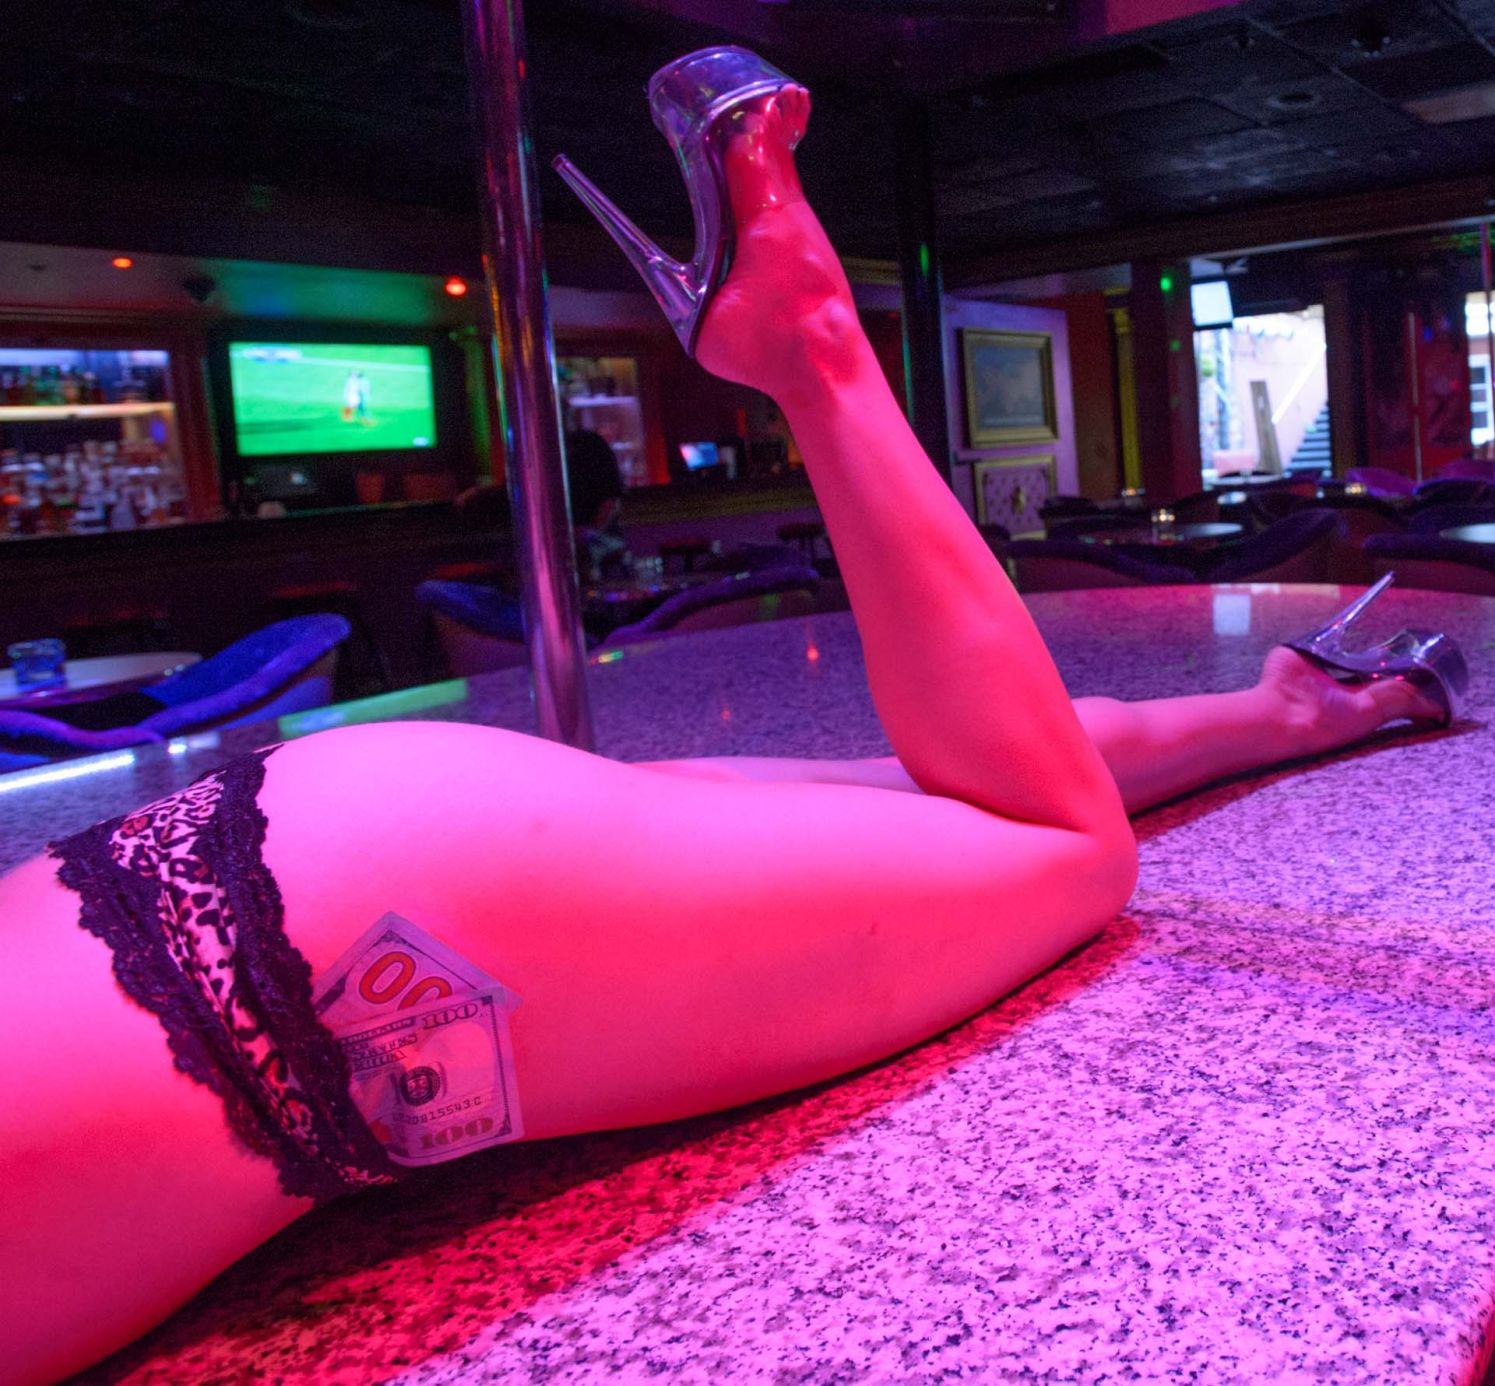 Erotic club in louisiana